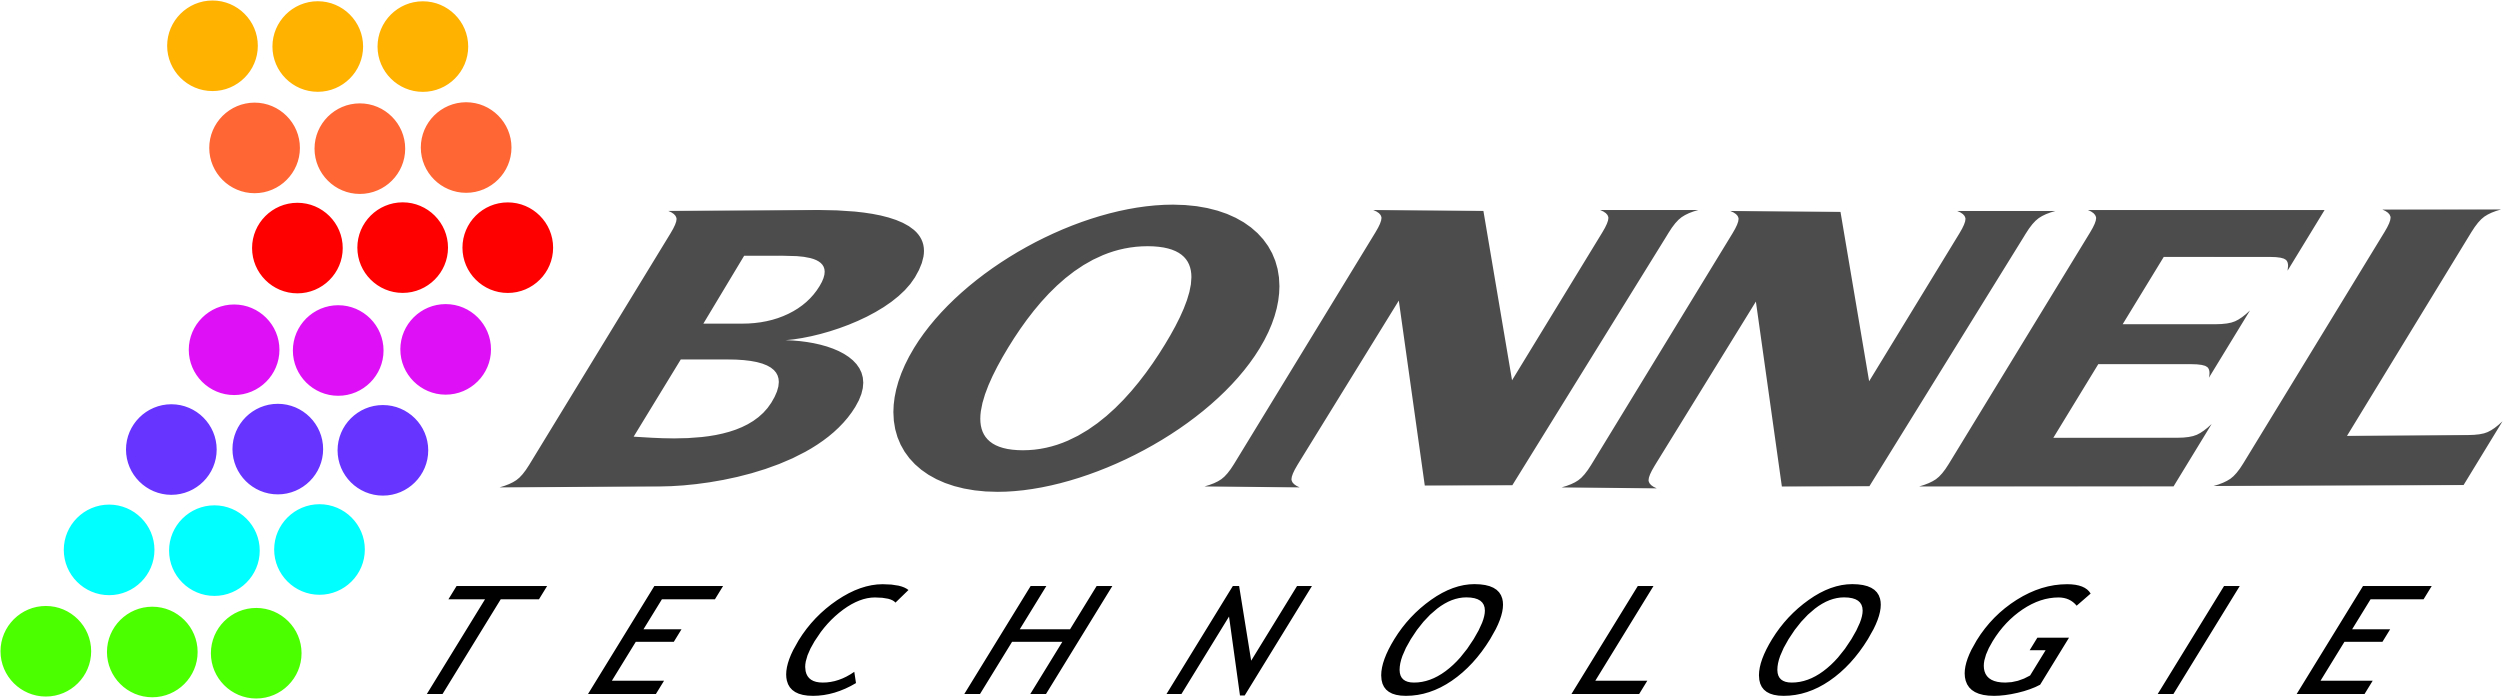 logo firmy BONNEL TECHNOLOGIE